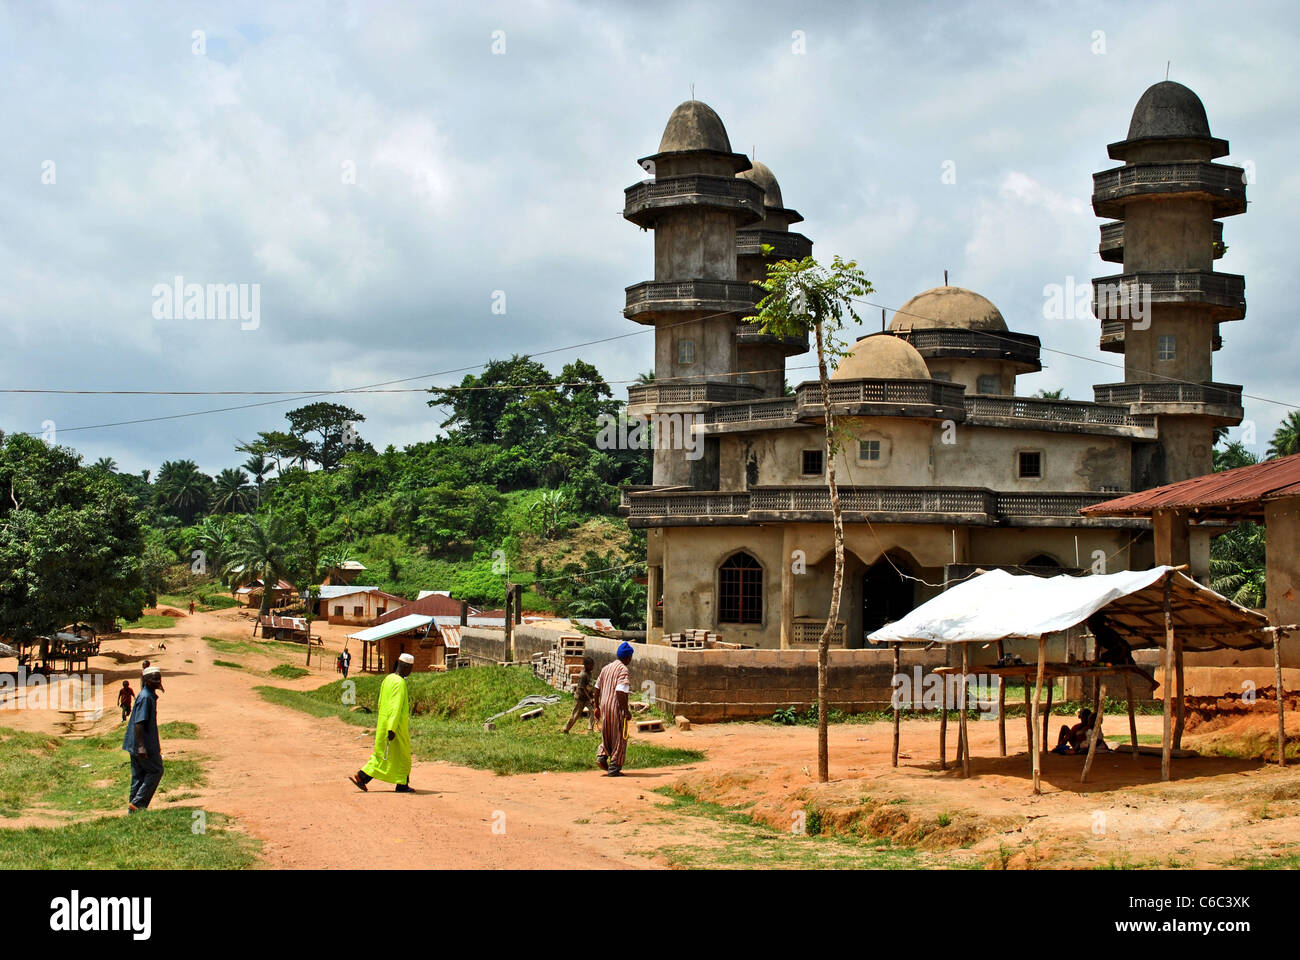 Muslims cross a road to go to the mosque in a small village between Kolahun and Bolahun, Liberia, West Africa - Stock Image